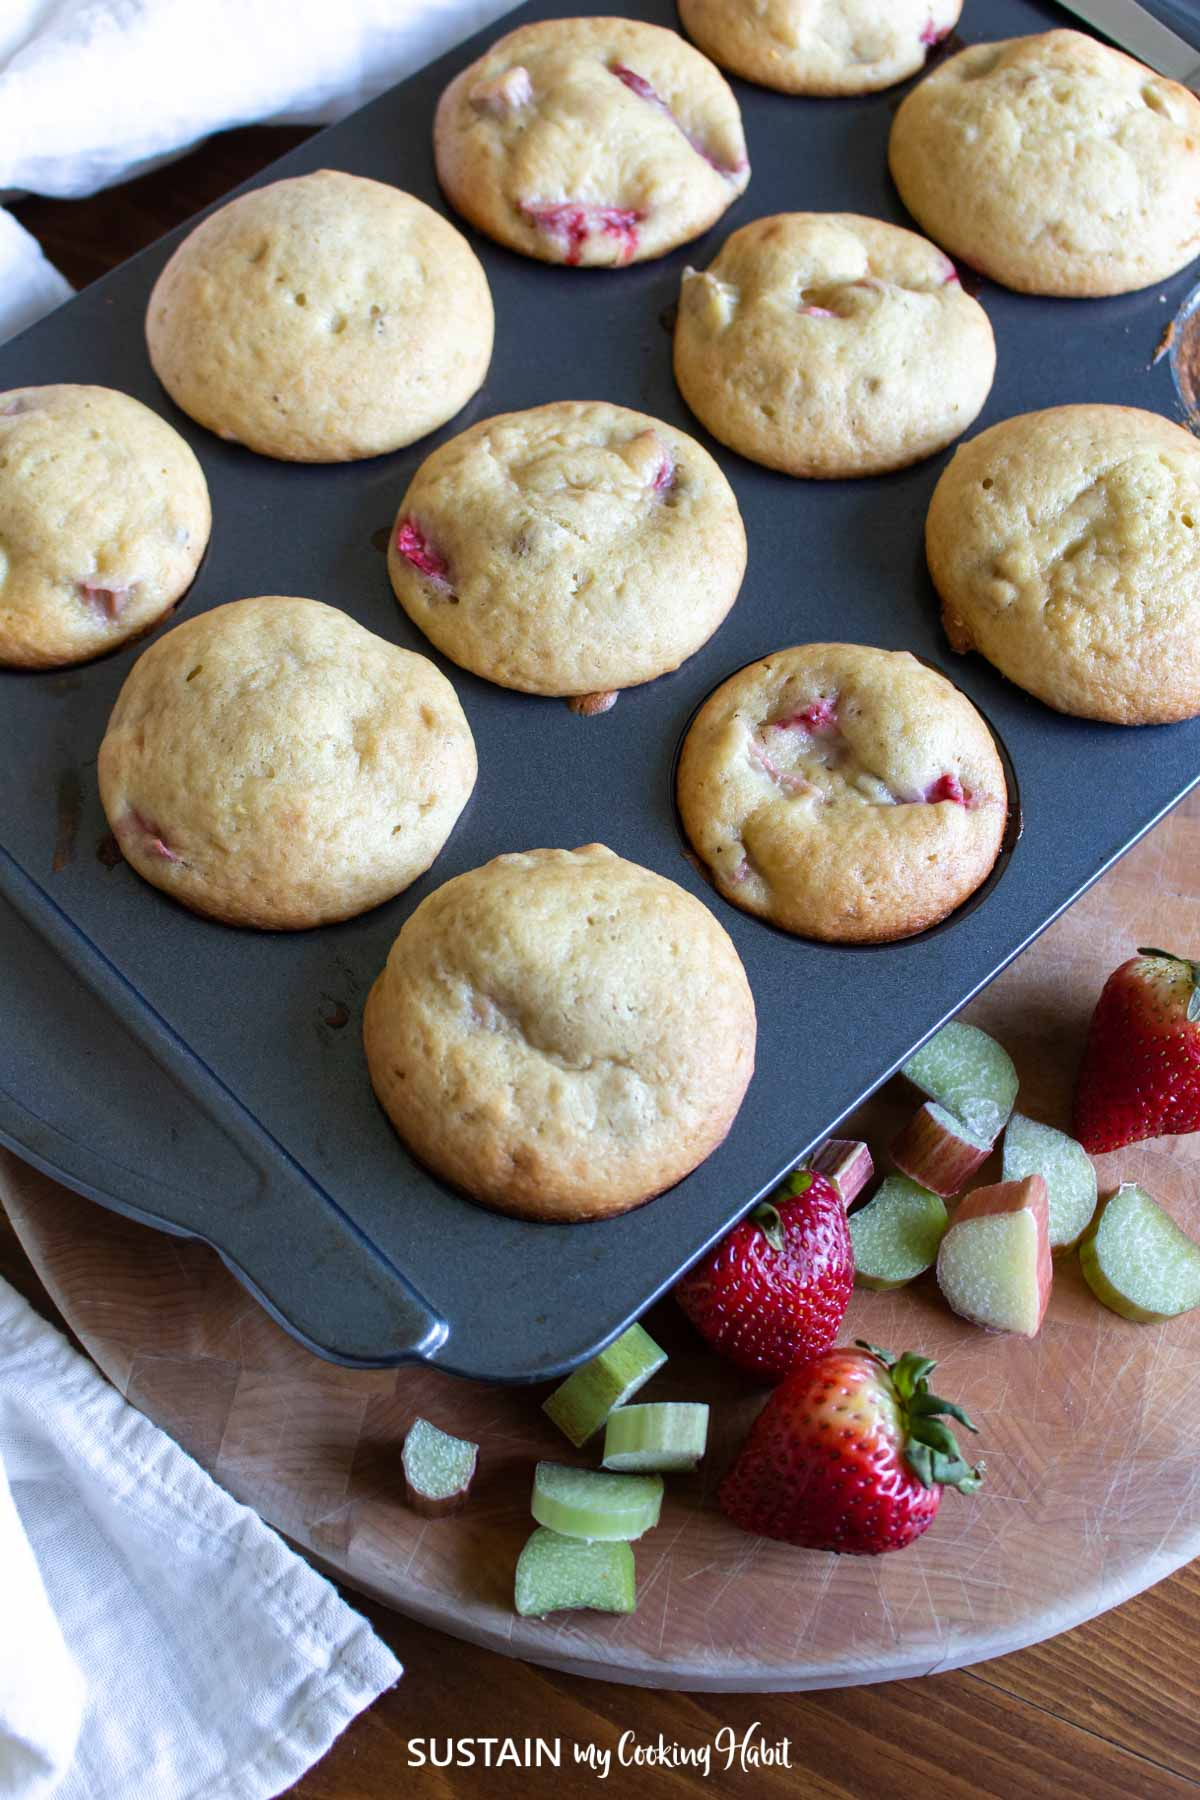 Strawberry rhubarb muffins in a muffin tin next to strawberries and cut pieces of rhubarb.